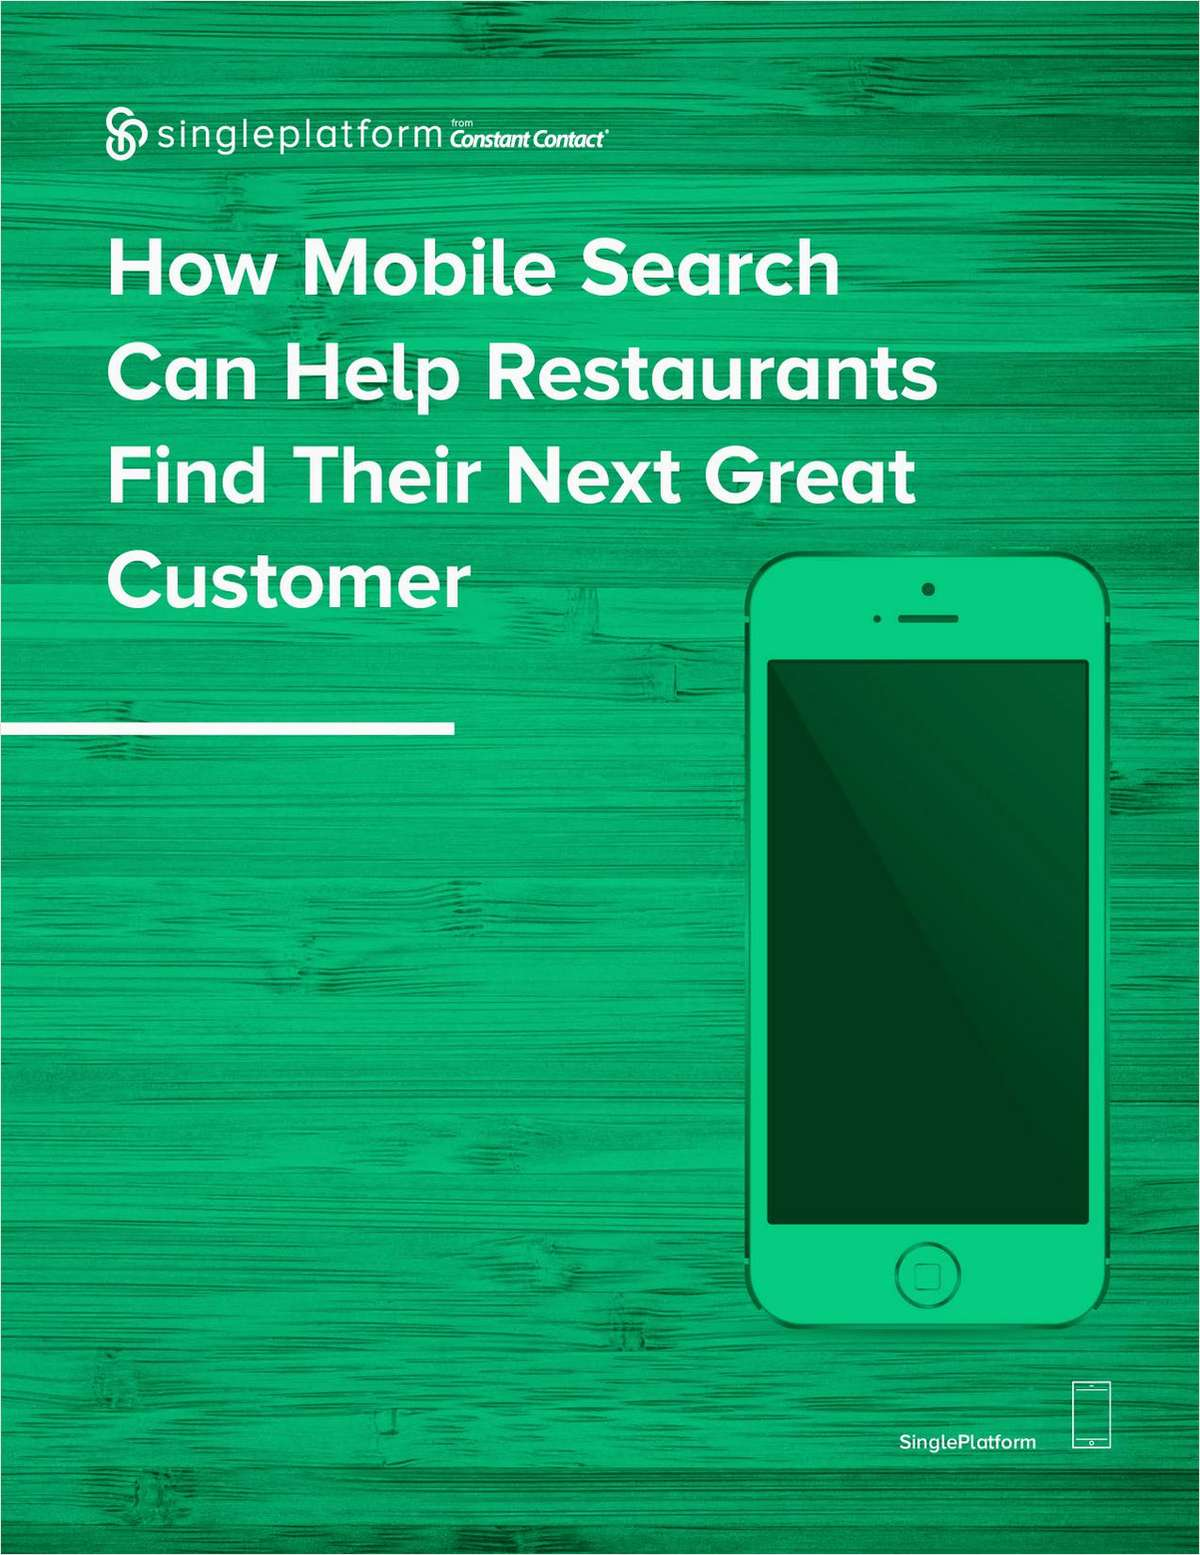 How Mobile Search Can Help Restaurants Find Their Next Great Customer